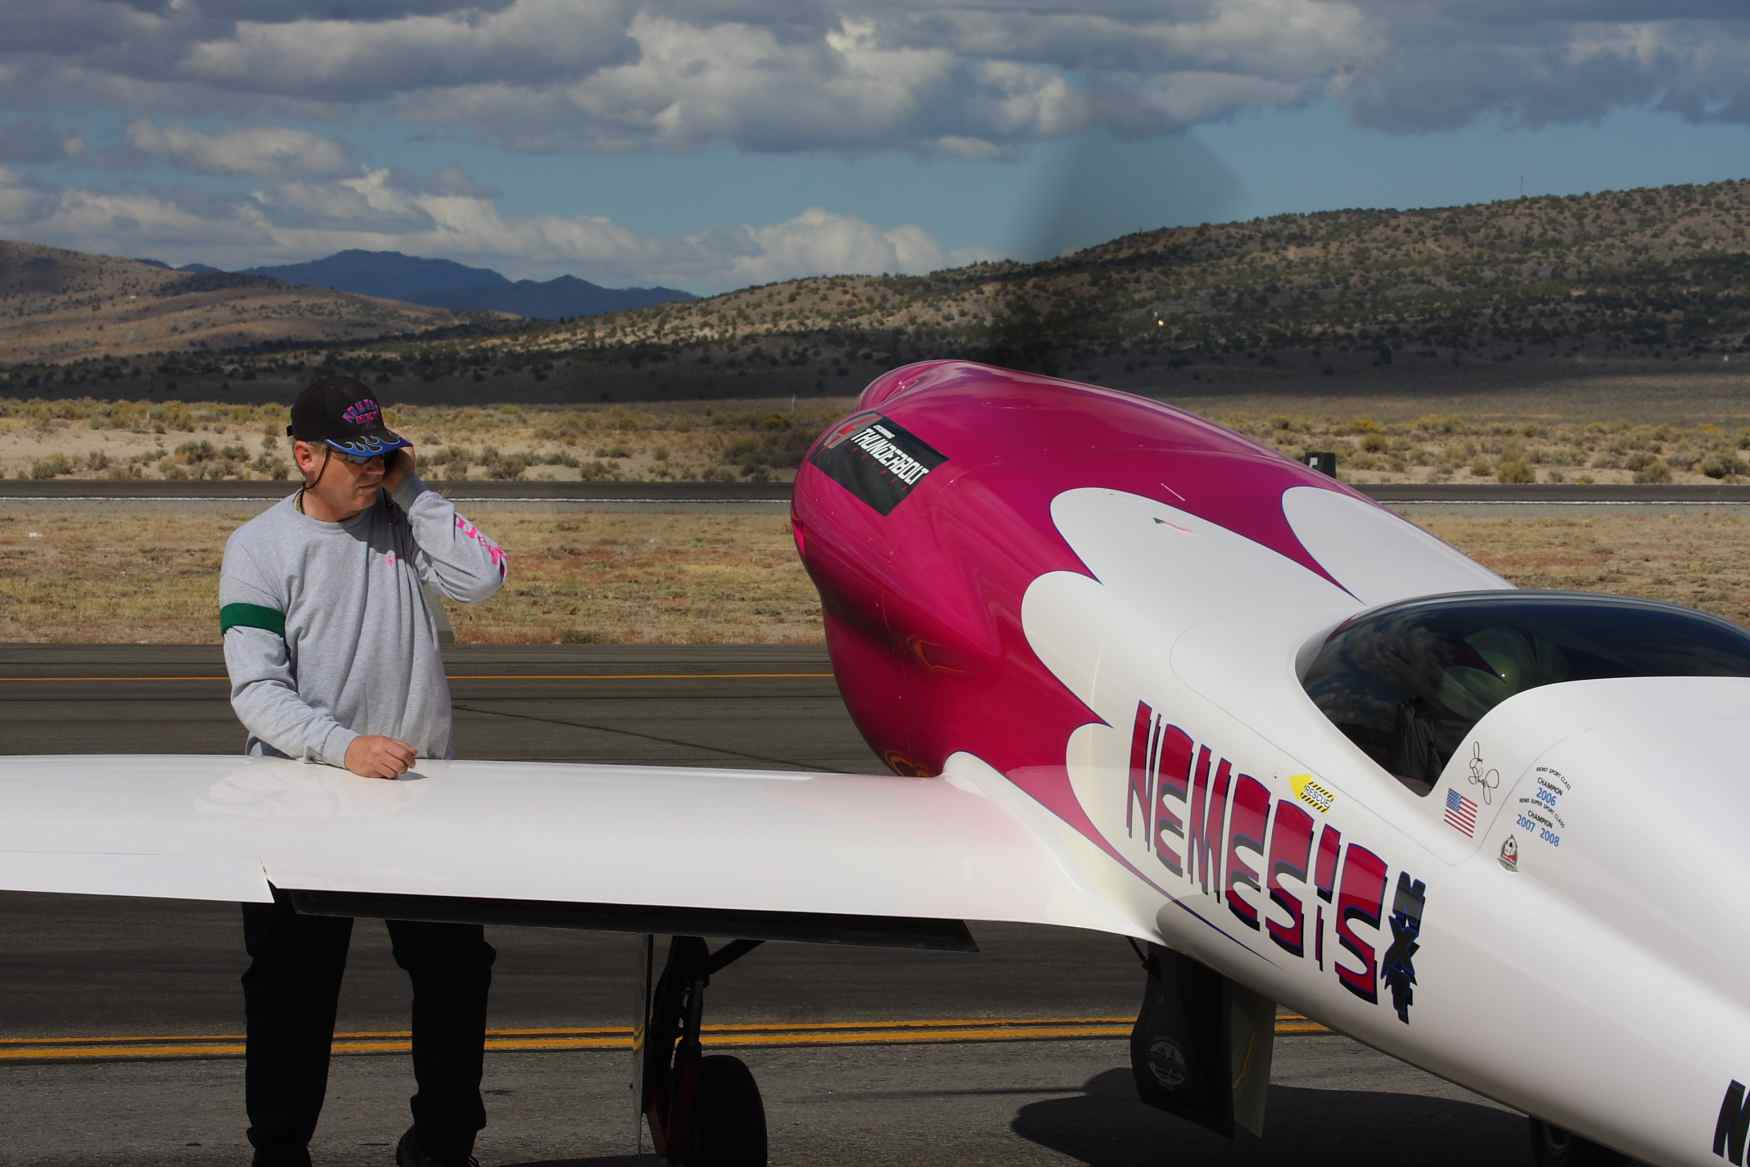 11 thoughts on the golden age of the national air races - Friday 9 18 09 Reno Nv